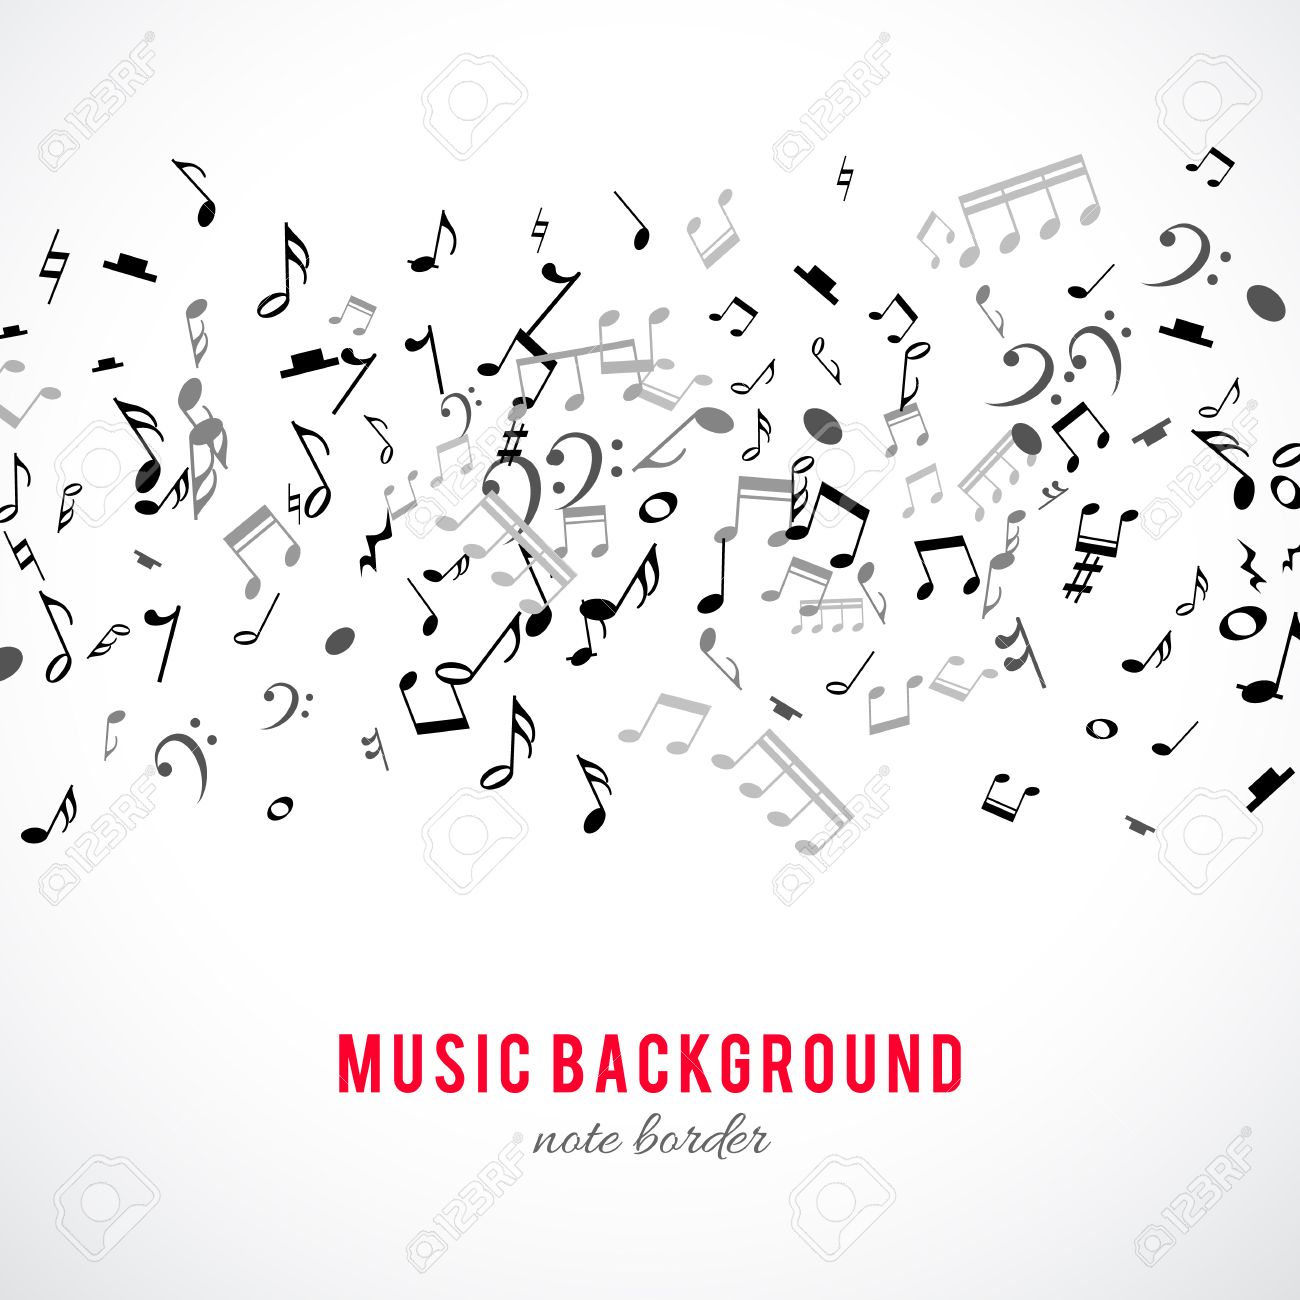 Abstract musical frame and border with black notes on white background. Vector Illustration for music design. Modern pop concept art melody banner. Sound key decoration with music symbol sign. - 53985667